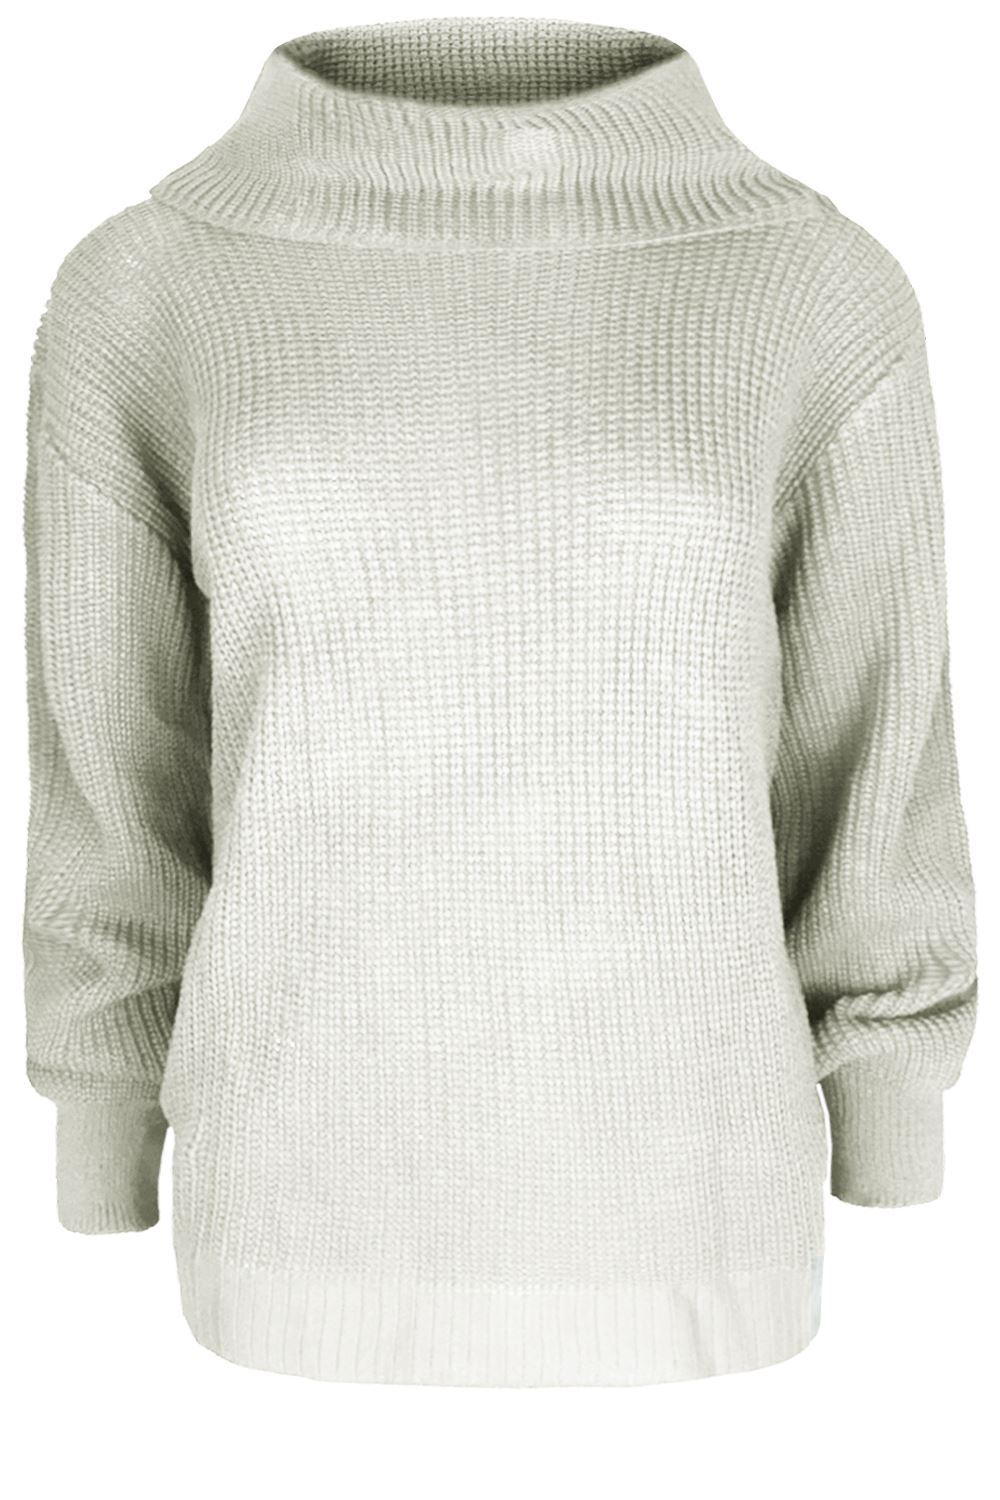 Ladies Womens Chunky Long Sleeve Knitted Oversized Cowl Roll Neck Jumper Top